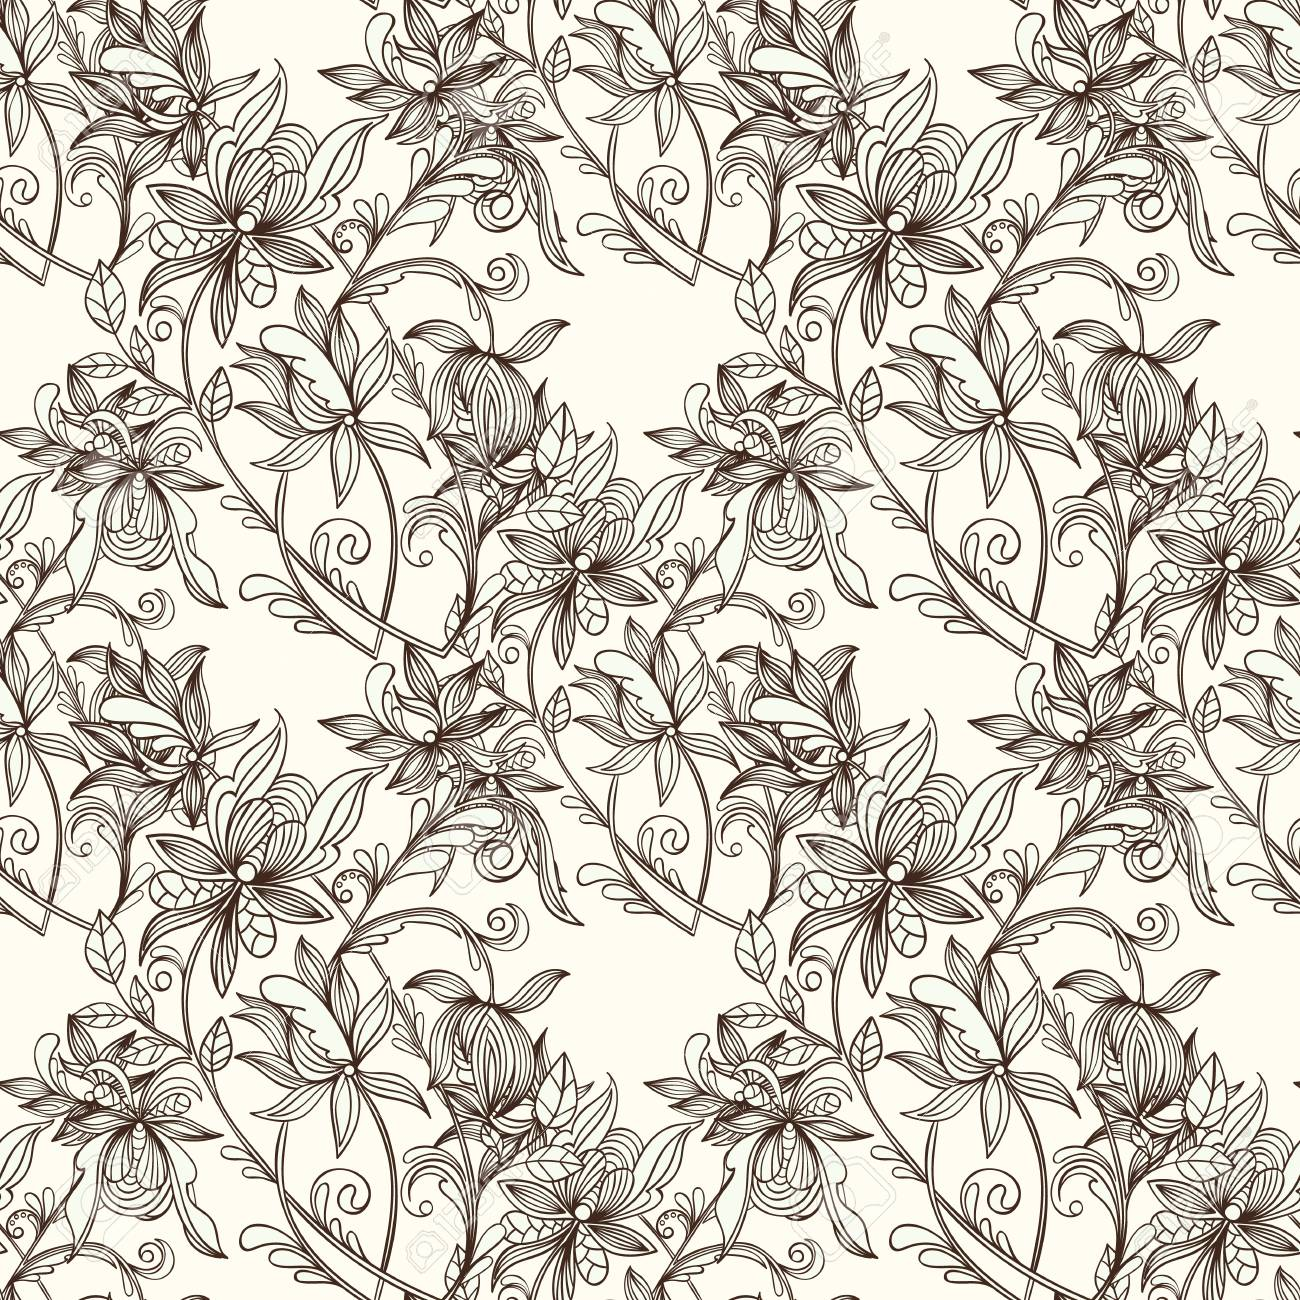 Hand Drawn Zentangle Style Vector Seamless Floral Pattern Sketch